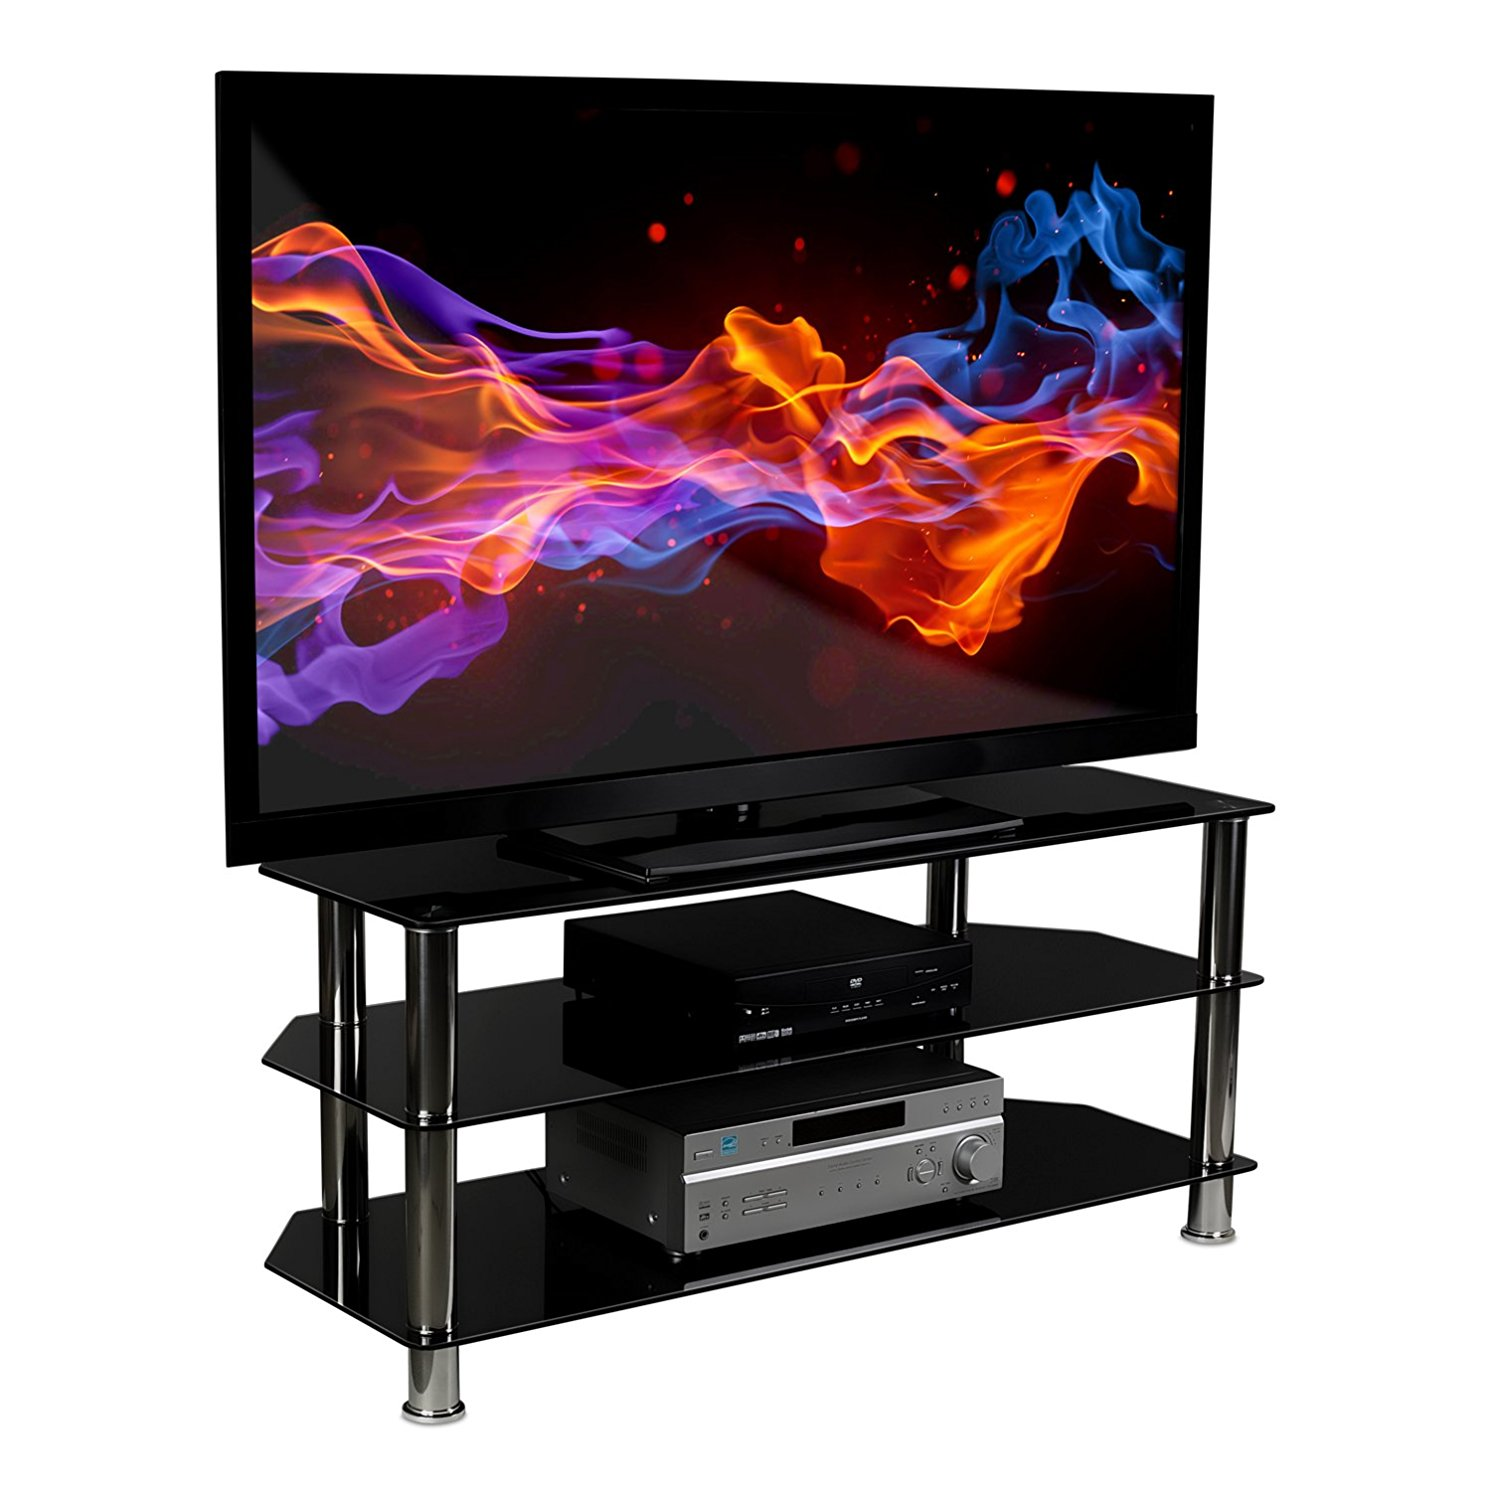 Mount-It! TV Stand For Flat Screen Televisions Fits 32 to 60 Inch LCD LED OLED 4K TVs, Three Tempered Glass Shelves (MI-880)